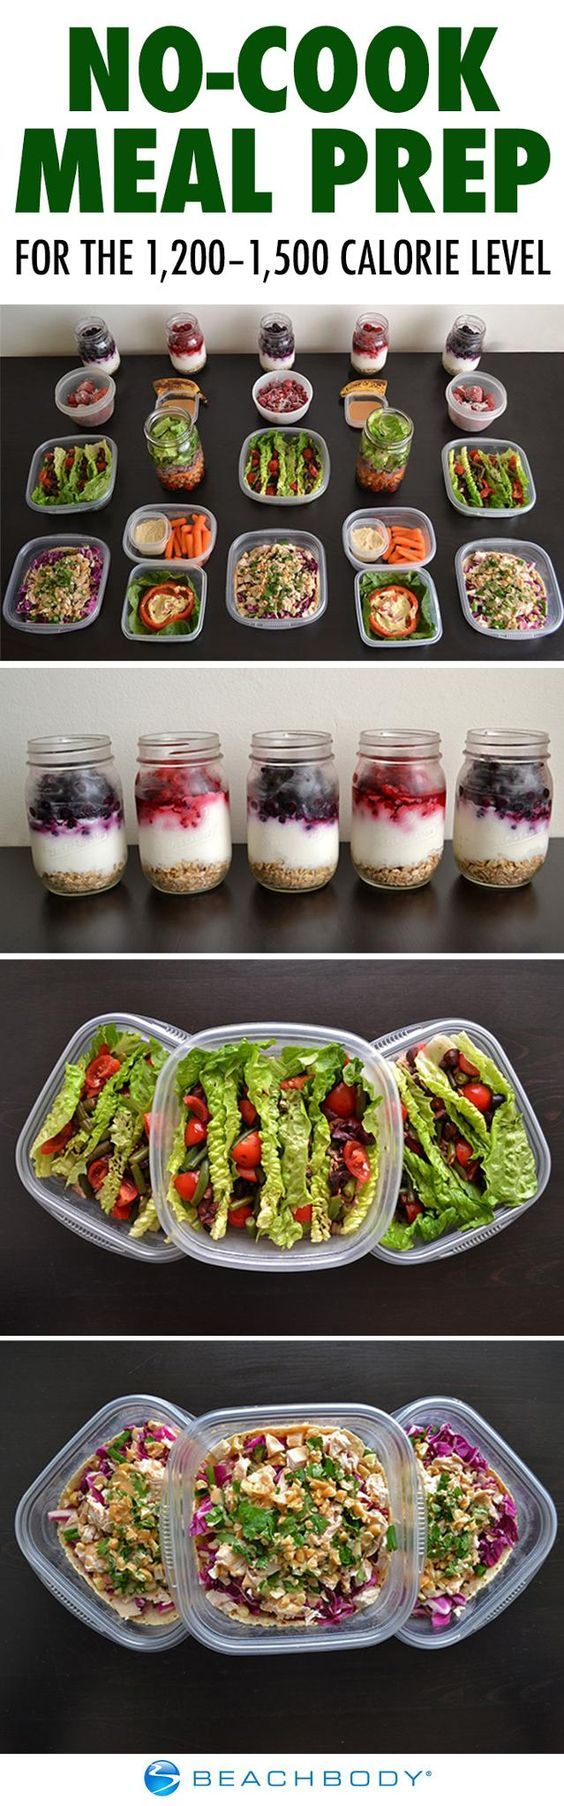 When it's too hot to turn on the stove or oven, a no-cook meal plan is the perfect way to prep your meals for the week. Get a complete guide for the 1,200 to 1,500 calorie level here! // meal prep // meal prep monday // meal planning // summer recipe